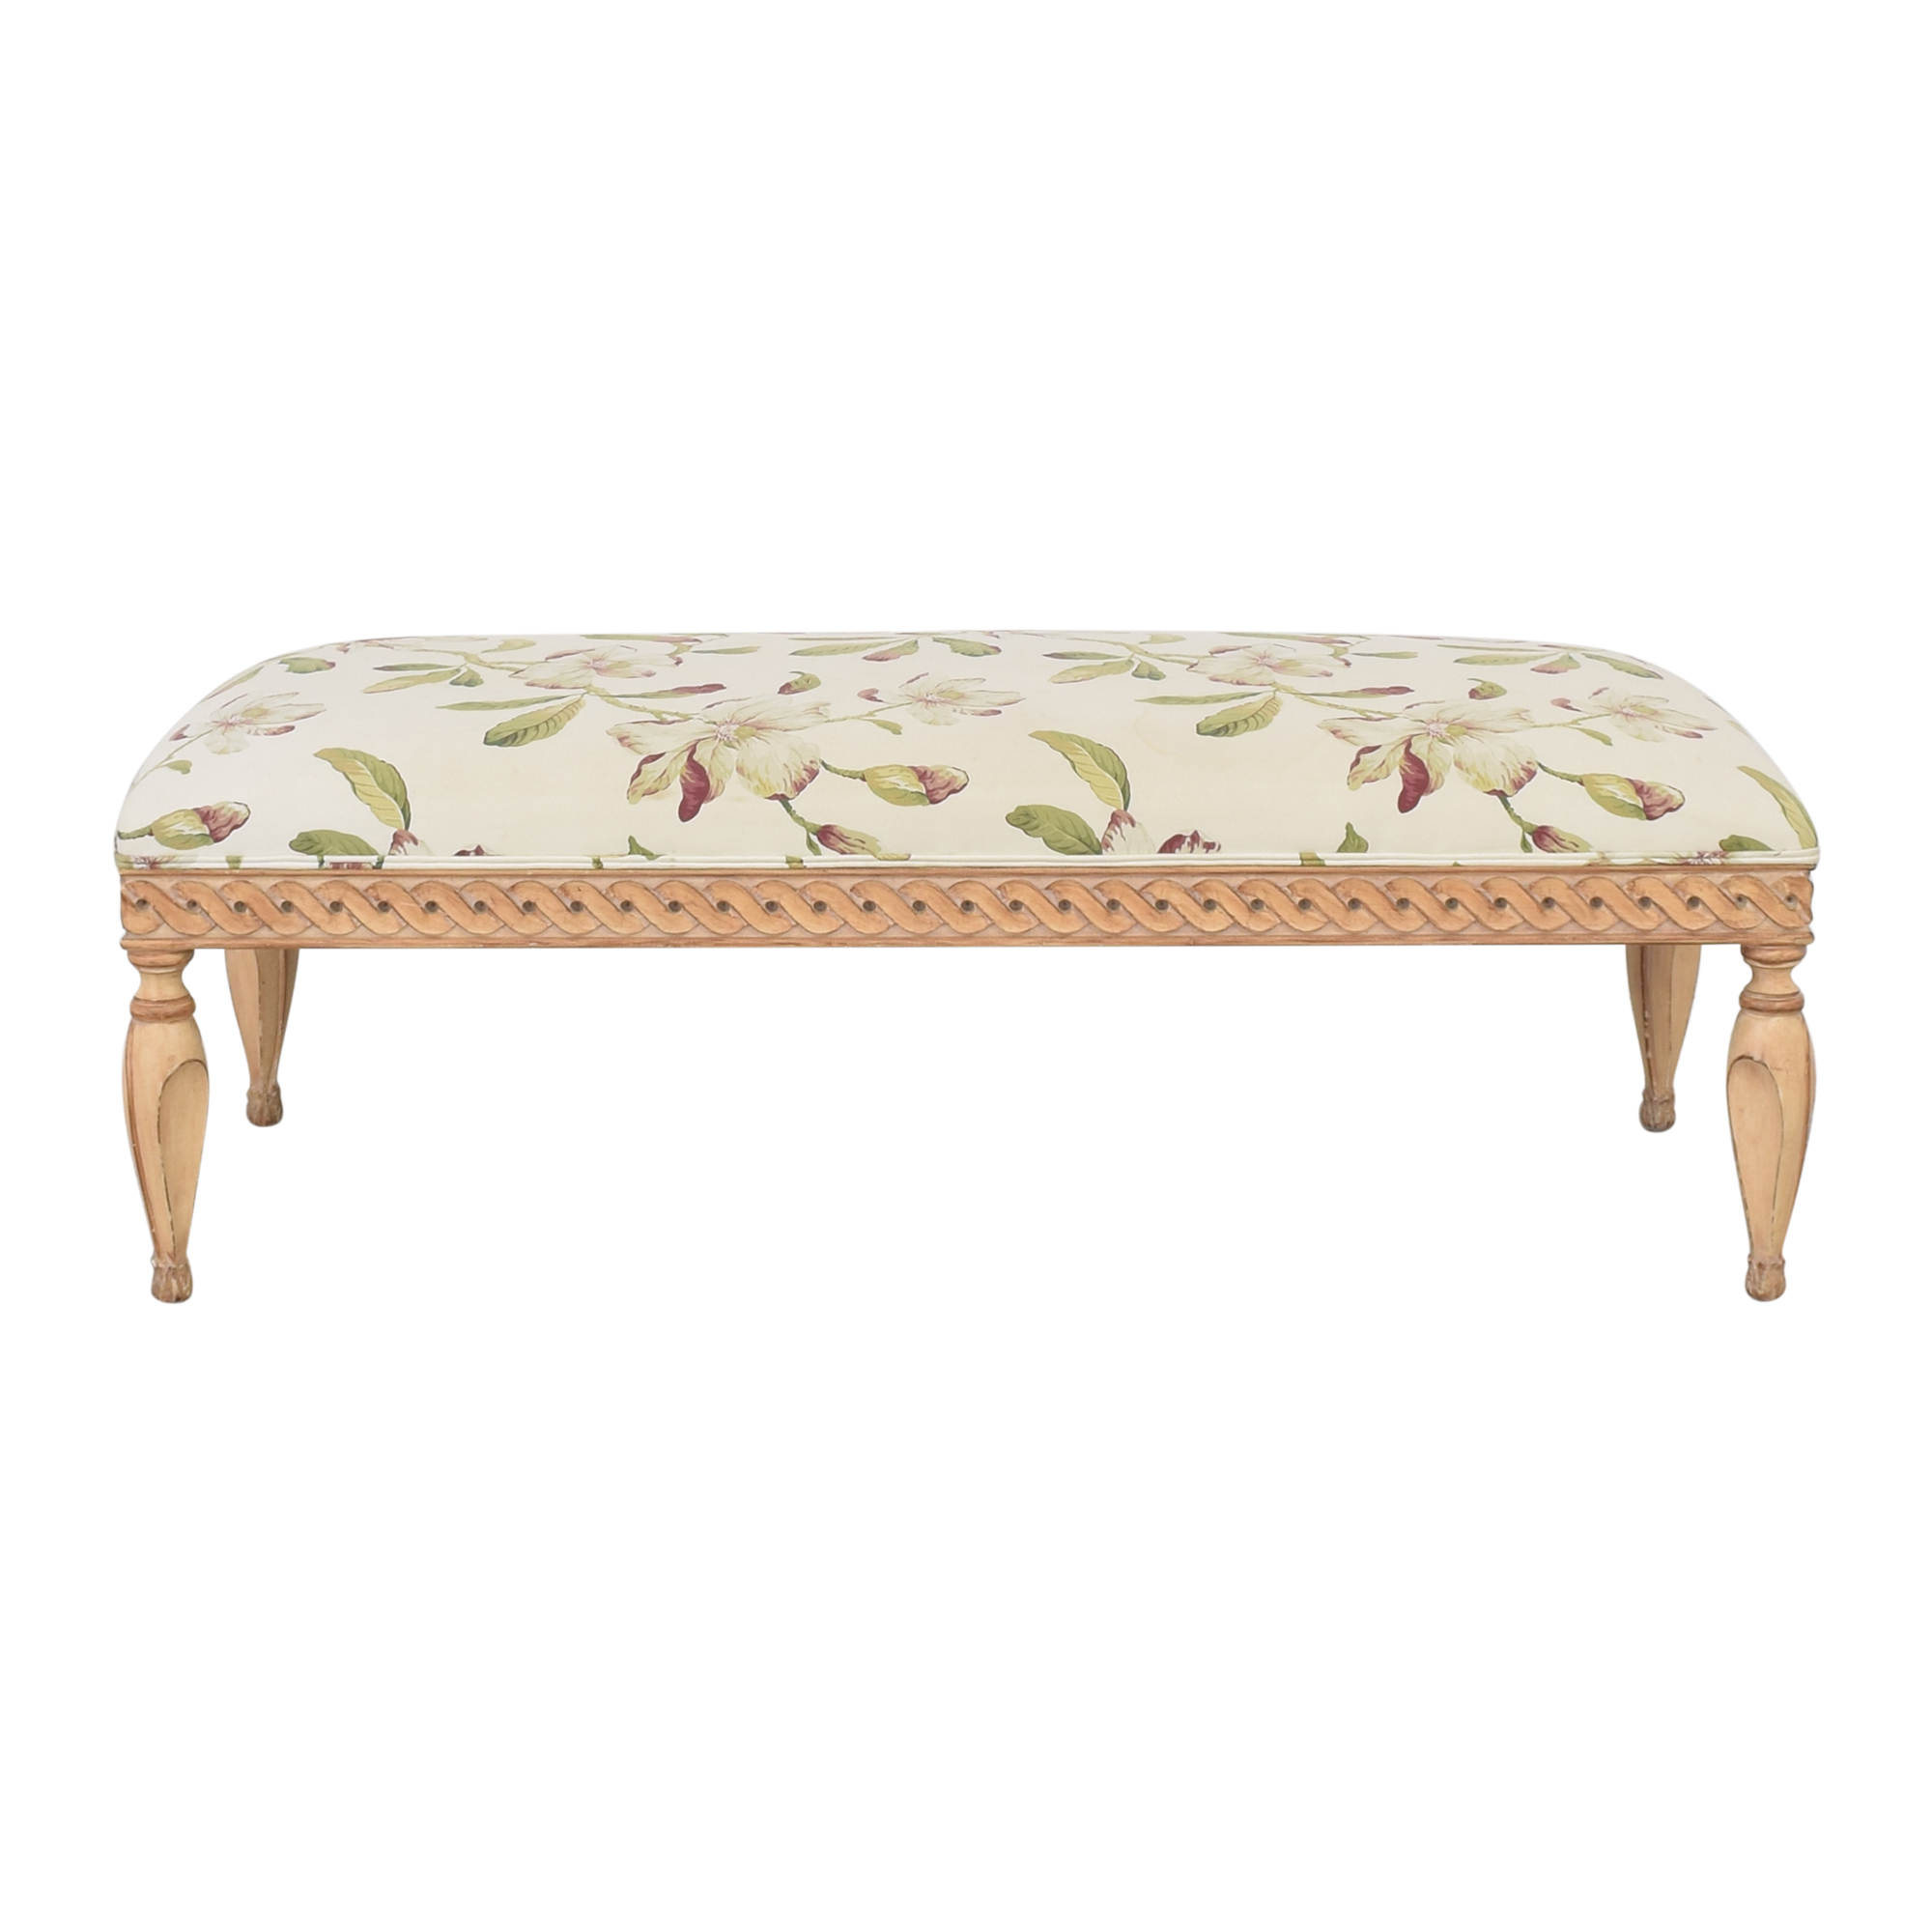 Kreiss Kreiss Upholstered Bench used